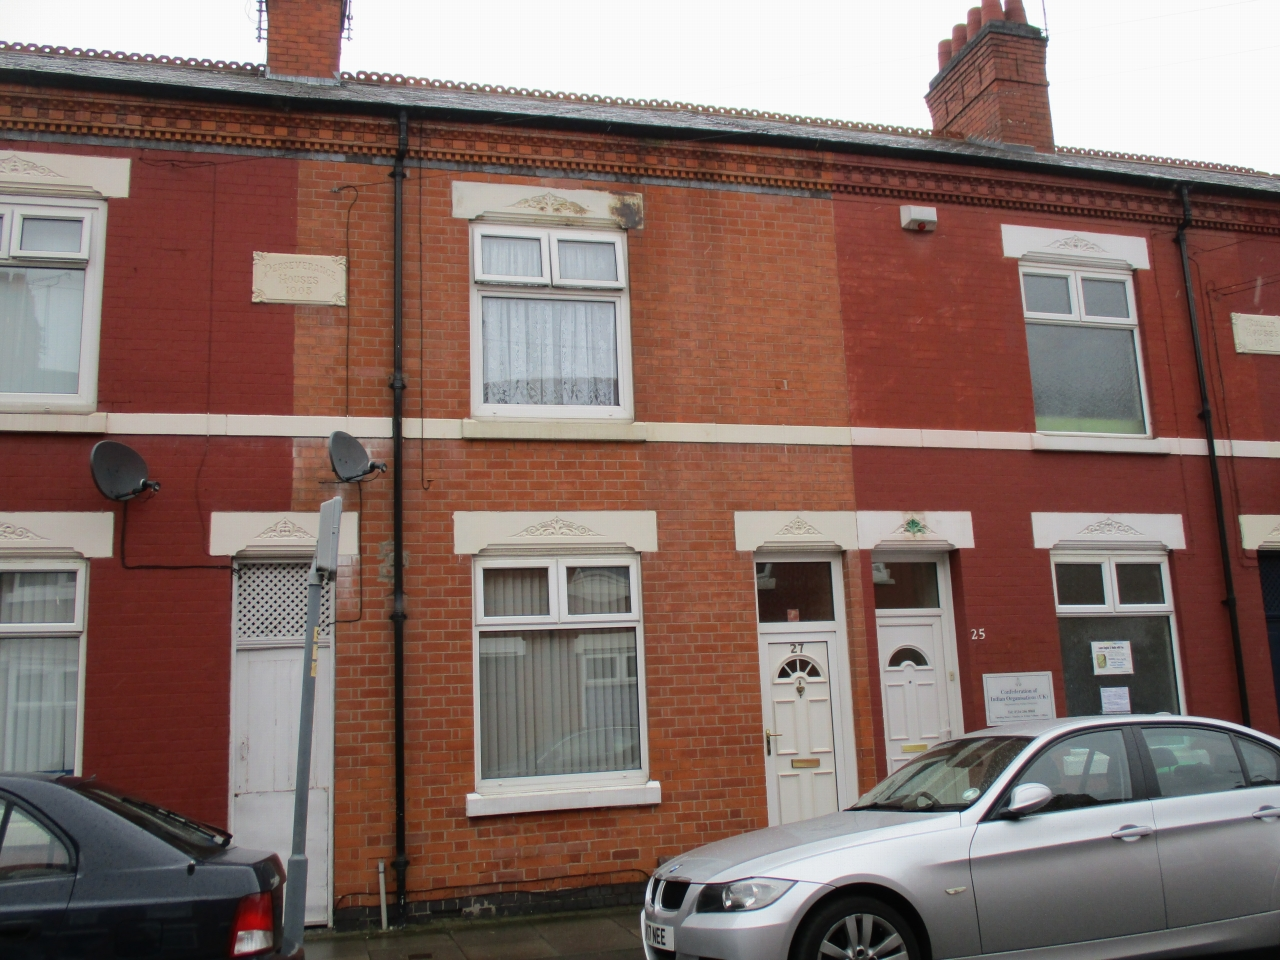 3 bedroom mid terraced house SSTC in Leicester - Photograph 1.